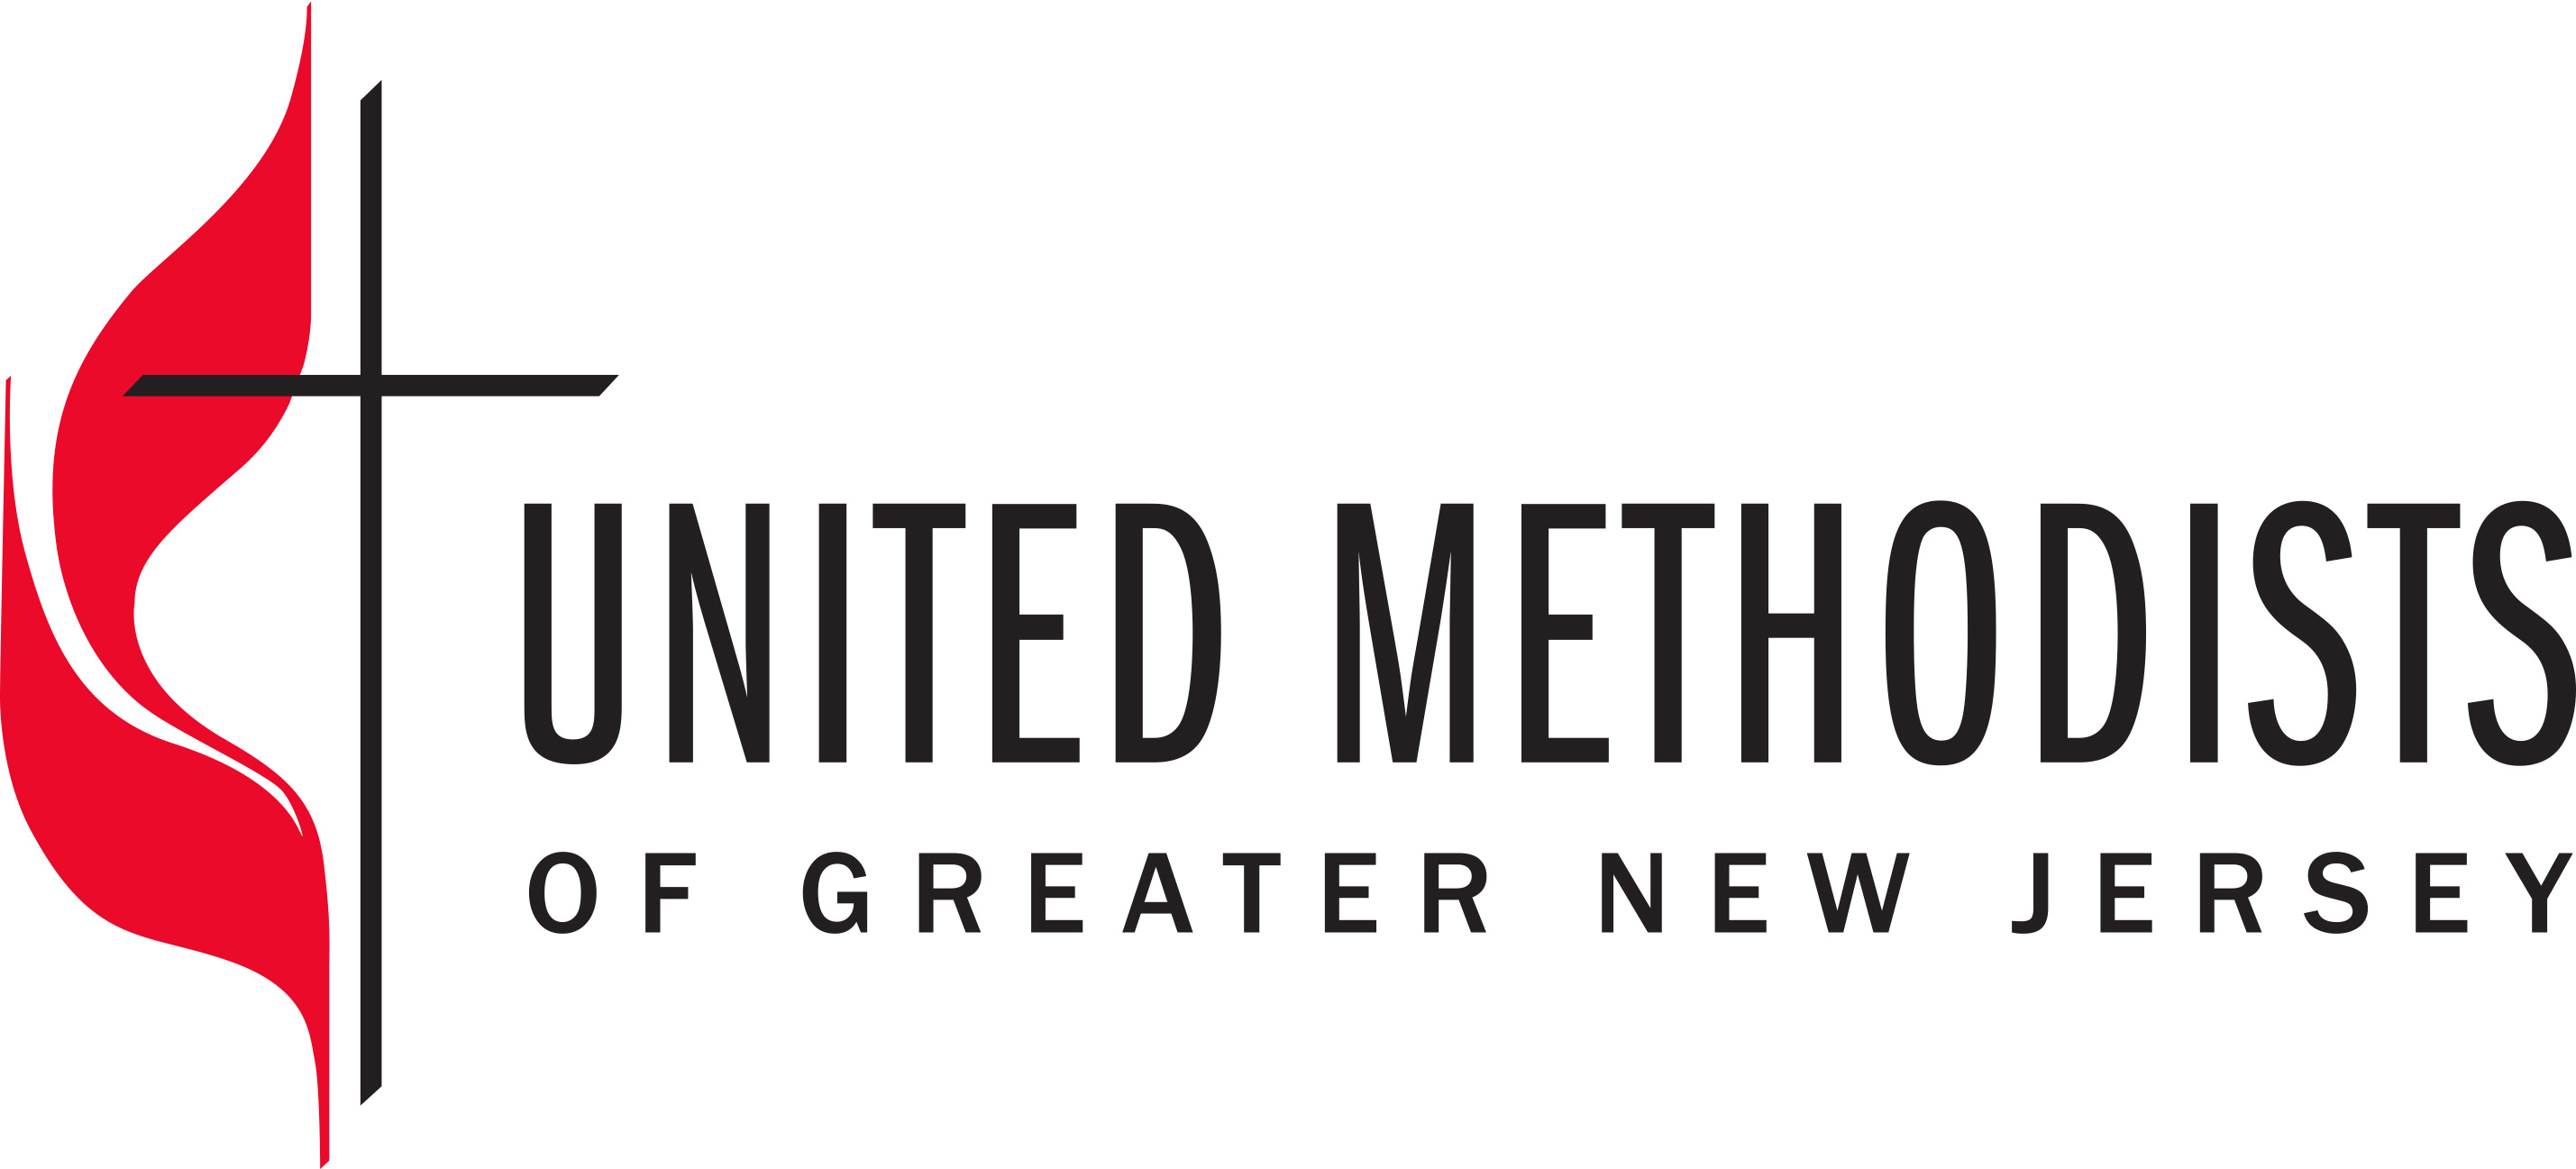 Gnj Vital Mission Partner Logos United Methodist Church Of Greater New Jersey